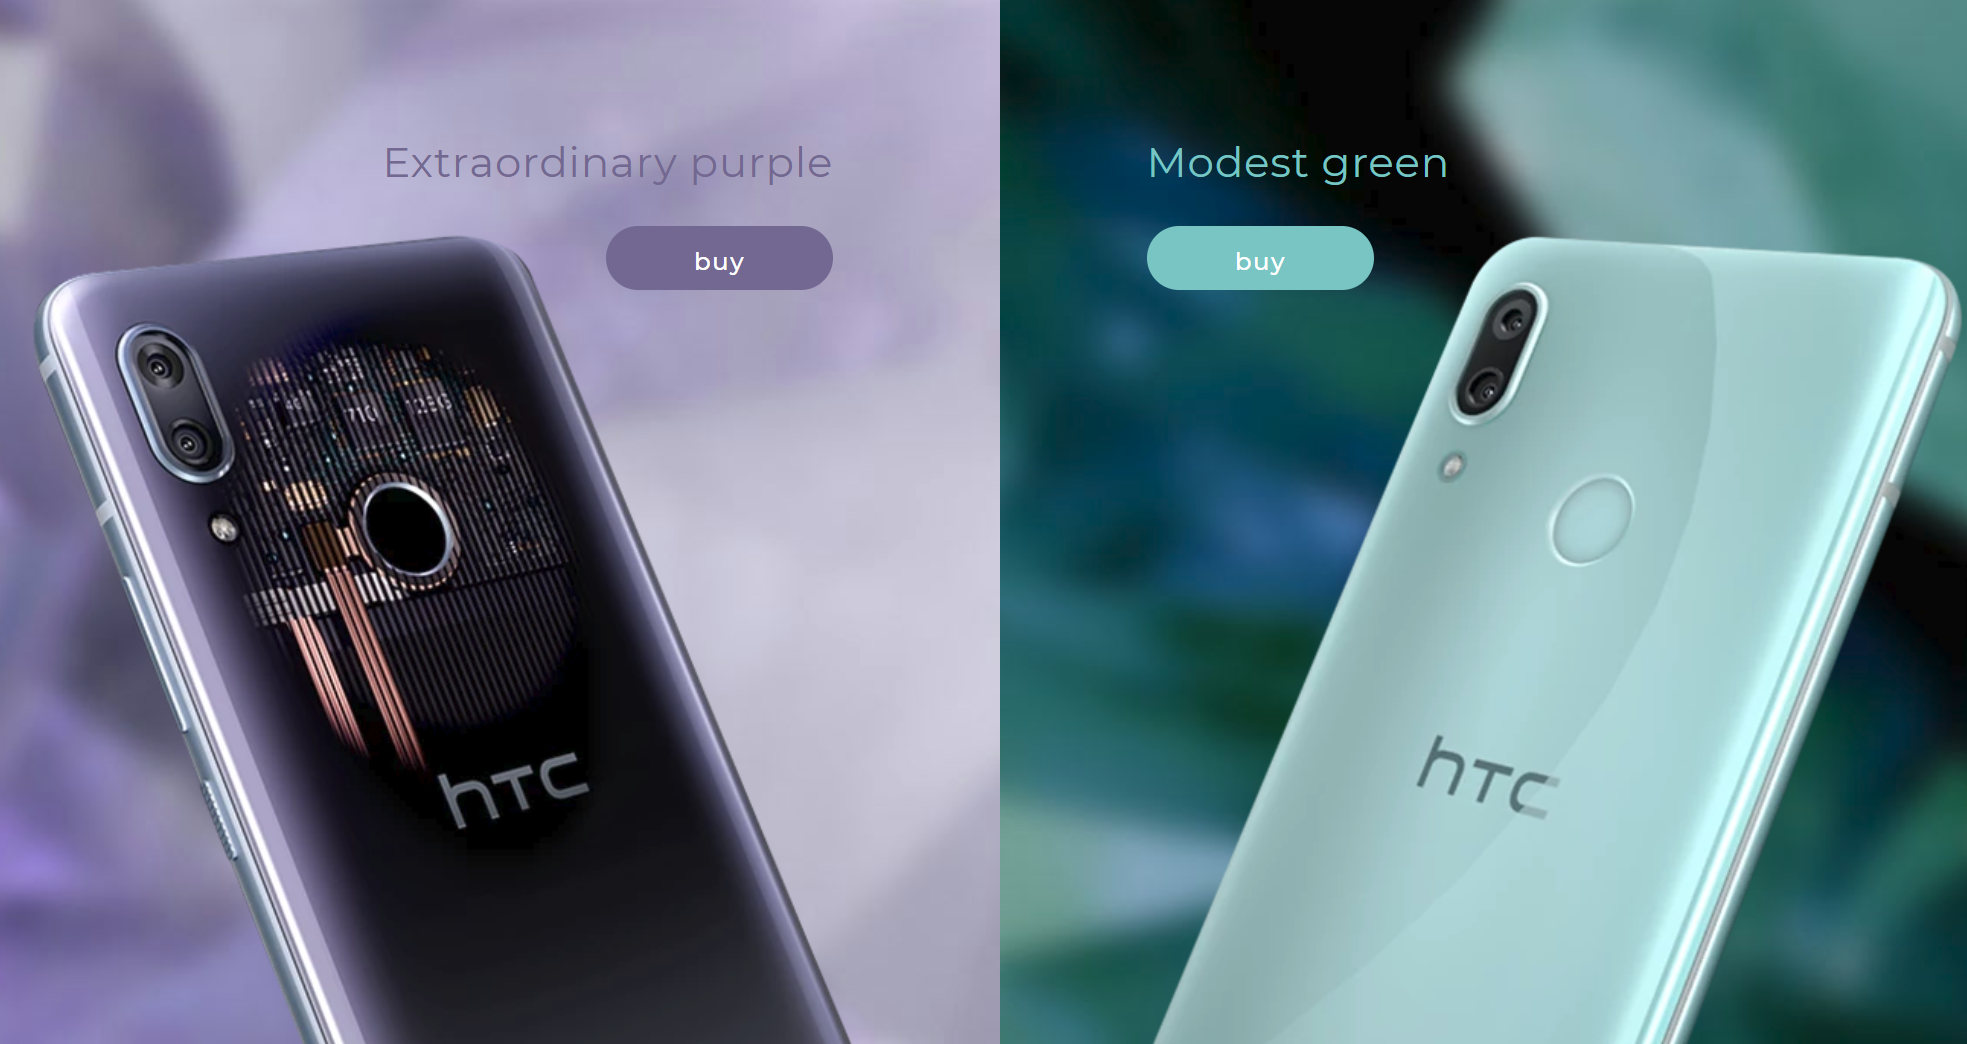 HTC has two (mediocre) new phones, proving it's not dead just yet